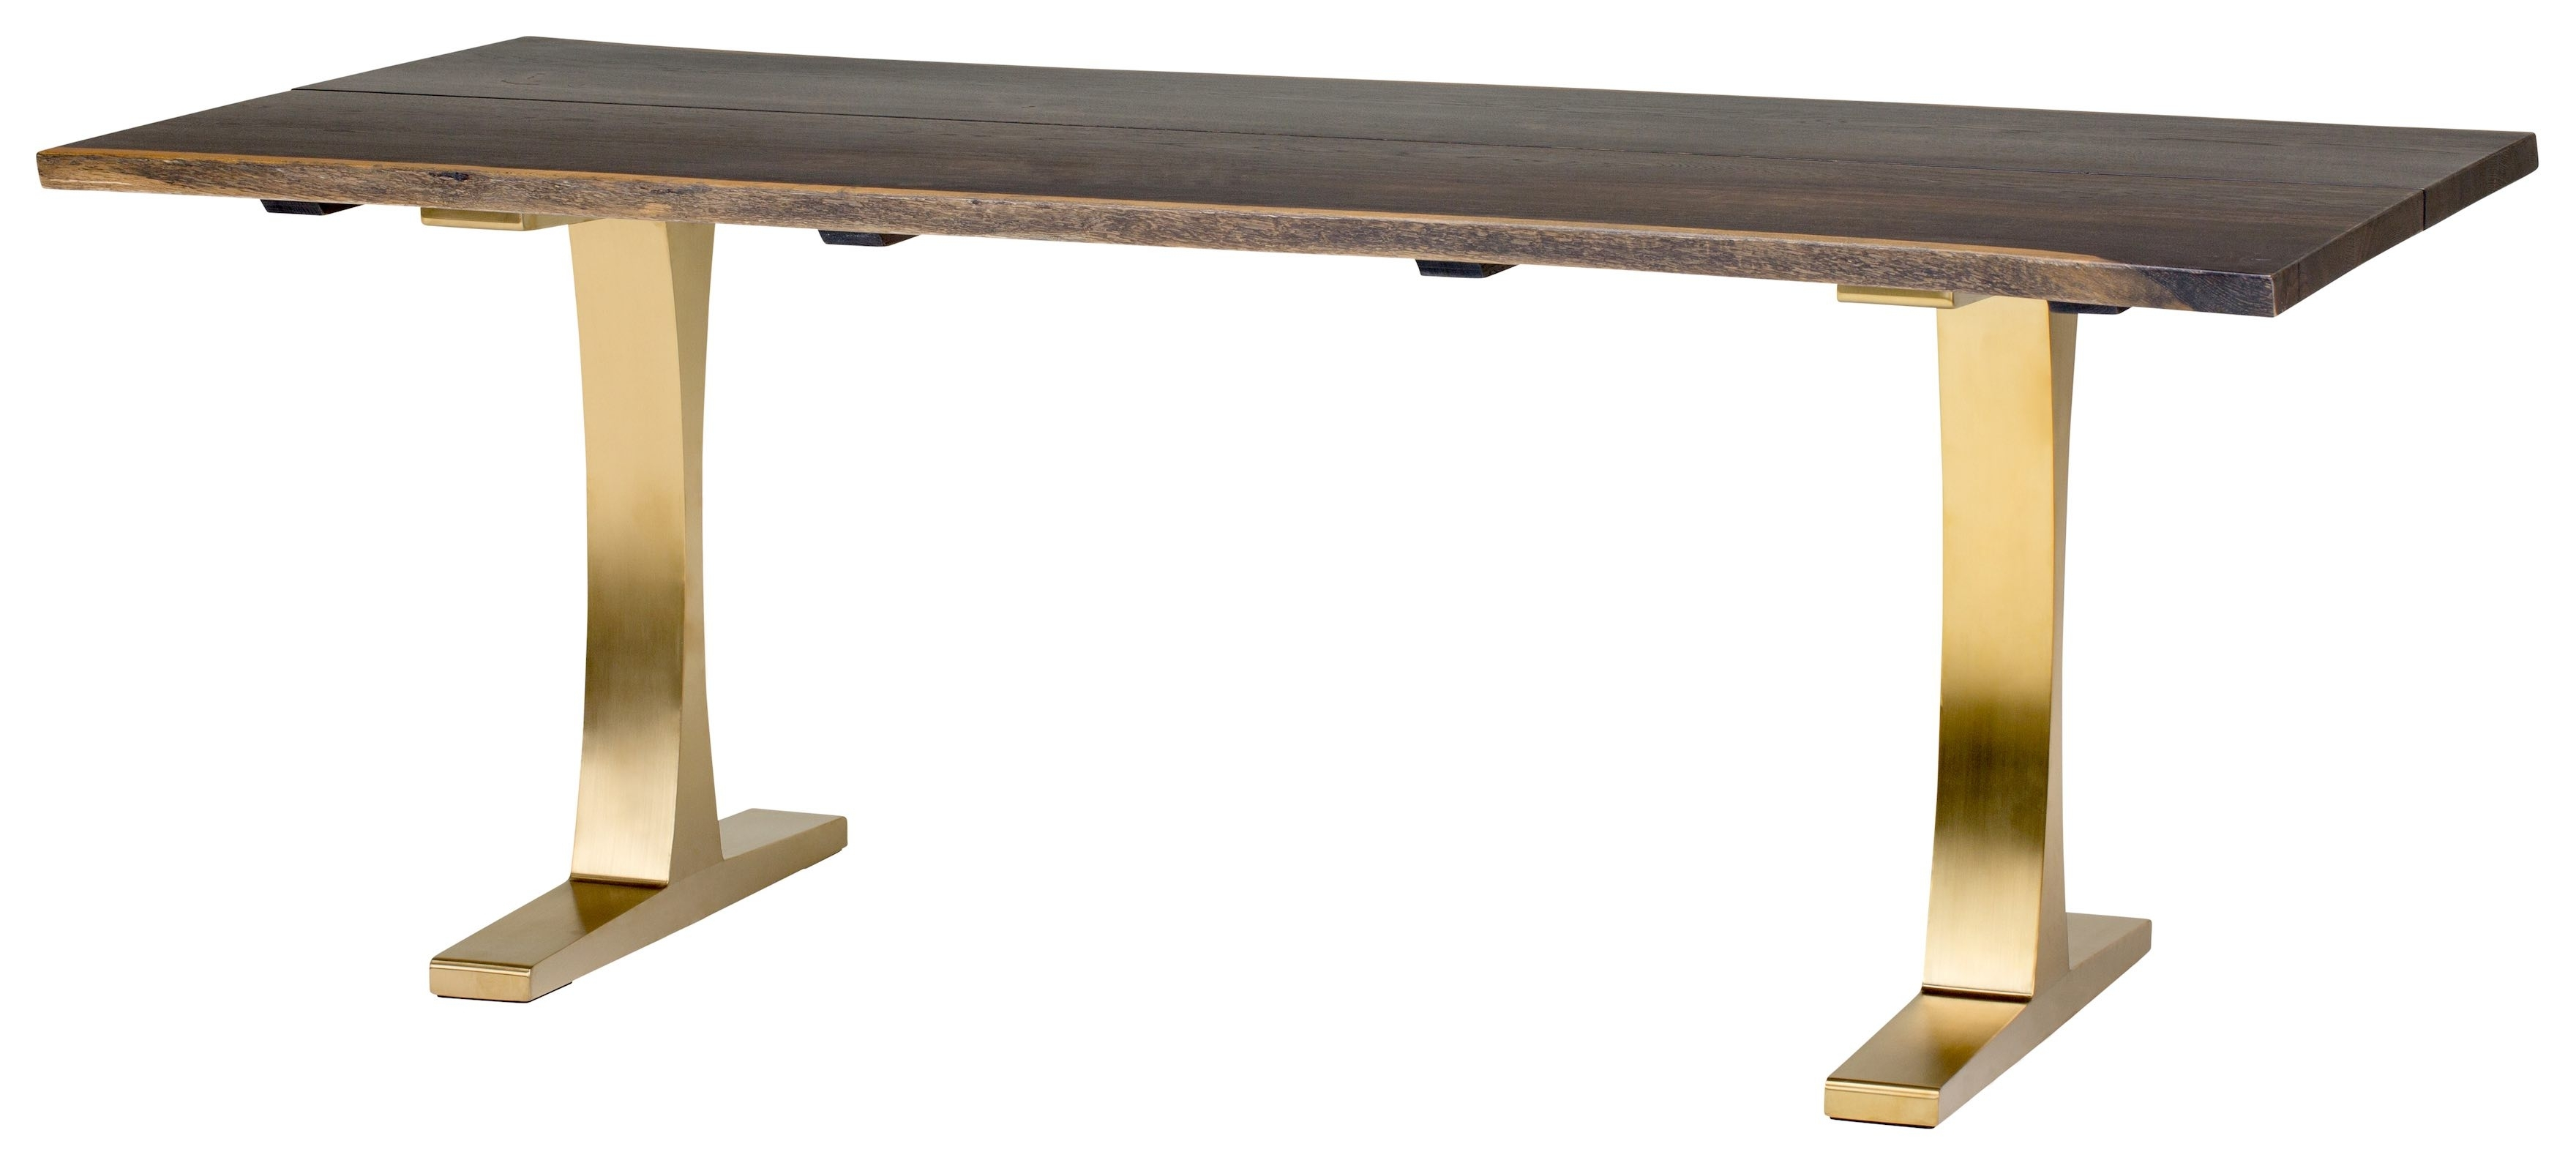 Toulouse Boule 78 Inch Dining Table In Seared Oak And Brushed Gold Base In Recent Portland 78 Inch Dining Tables (Image 20 of 20)